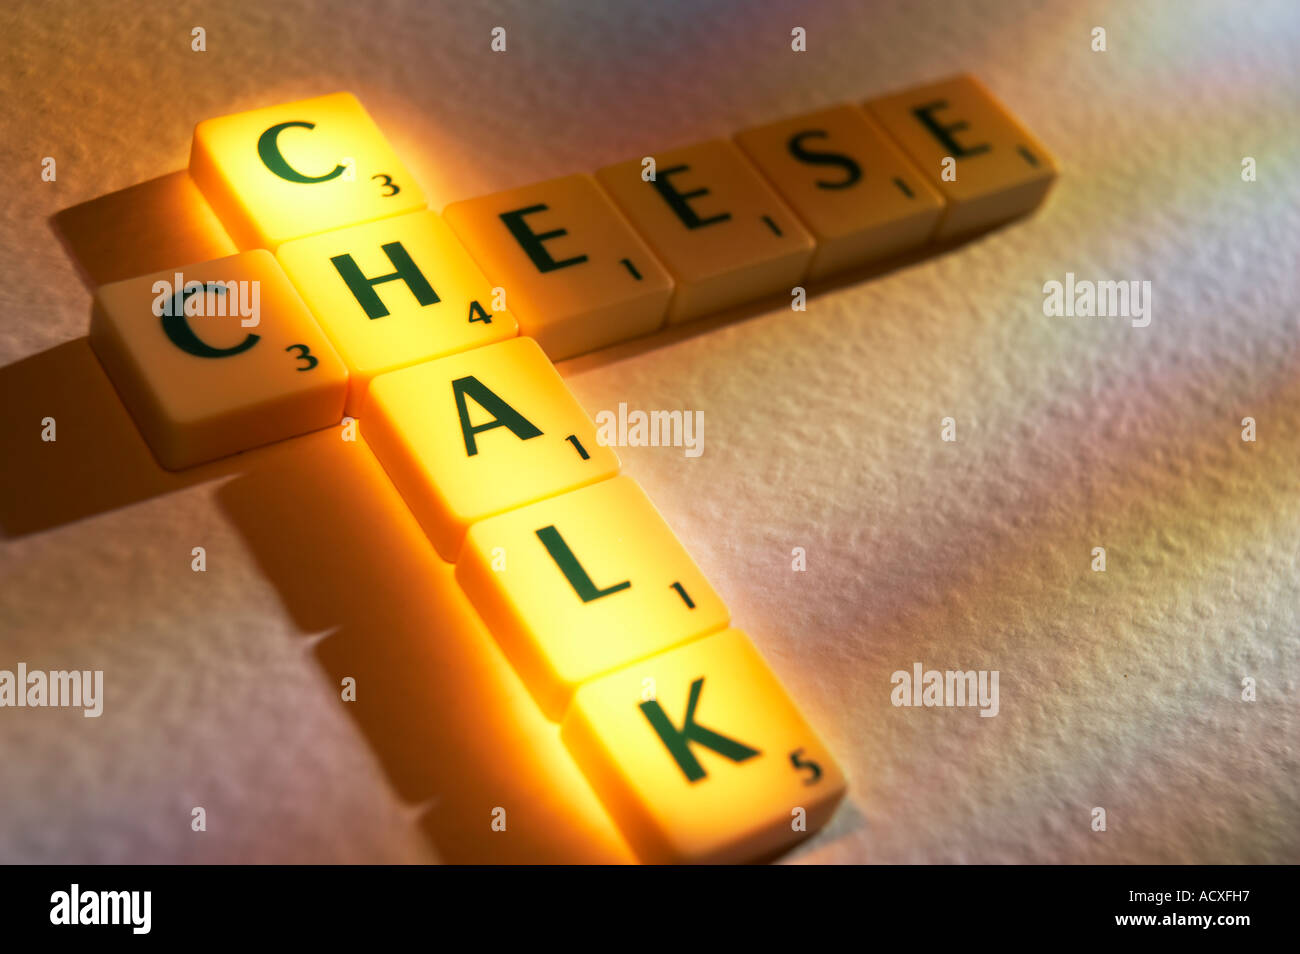 scrabble board game letters spelling the words chalk and cheese